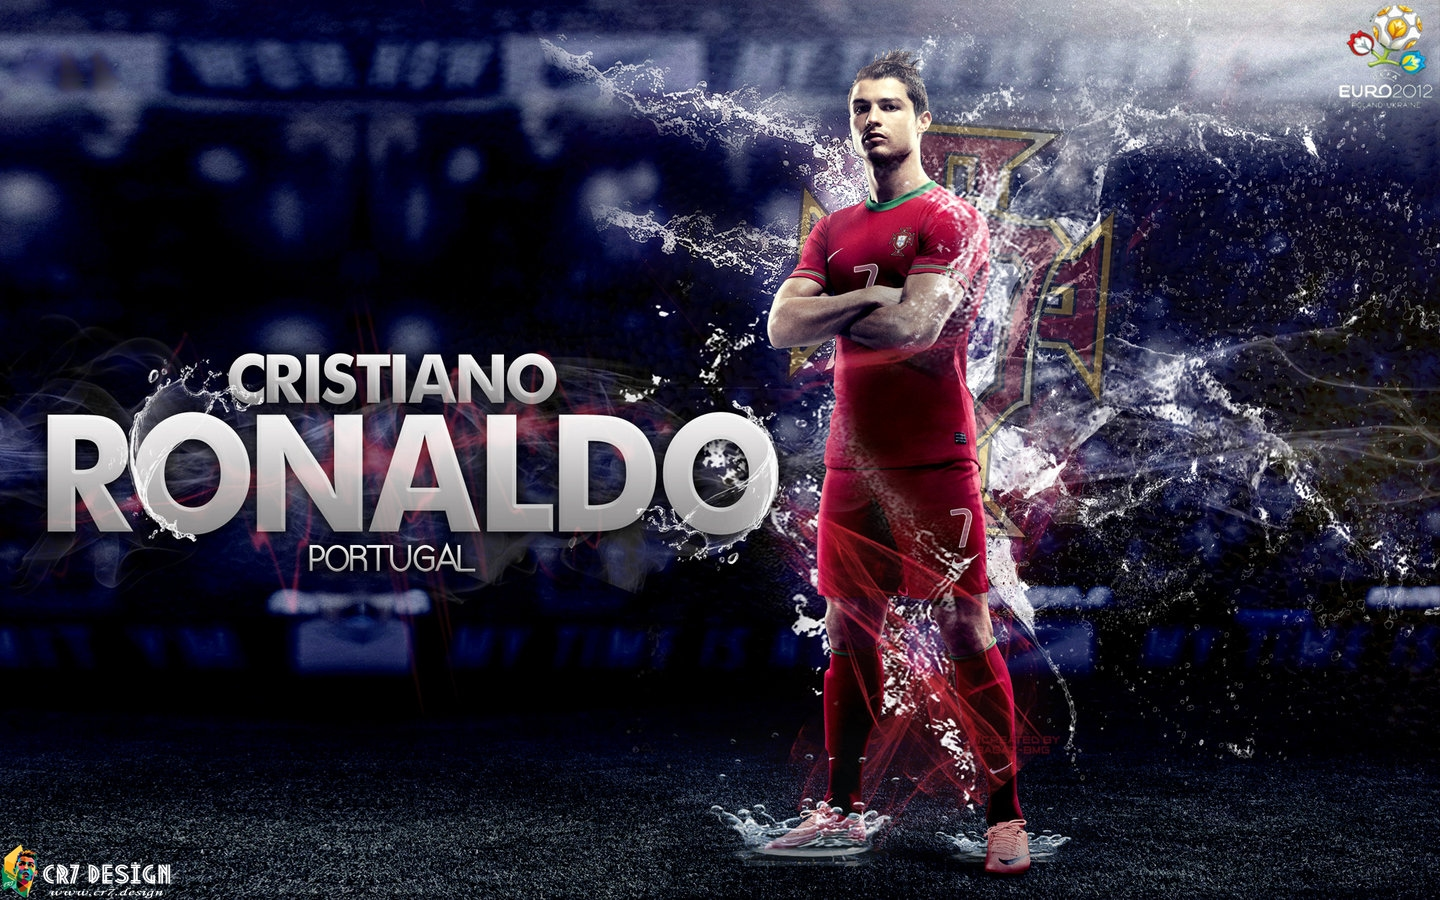 ciristiano-ronaldo-wallpaper-design-105